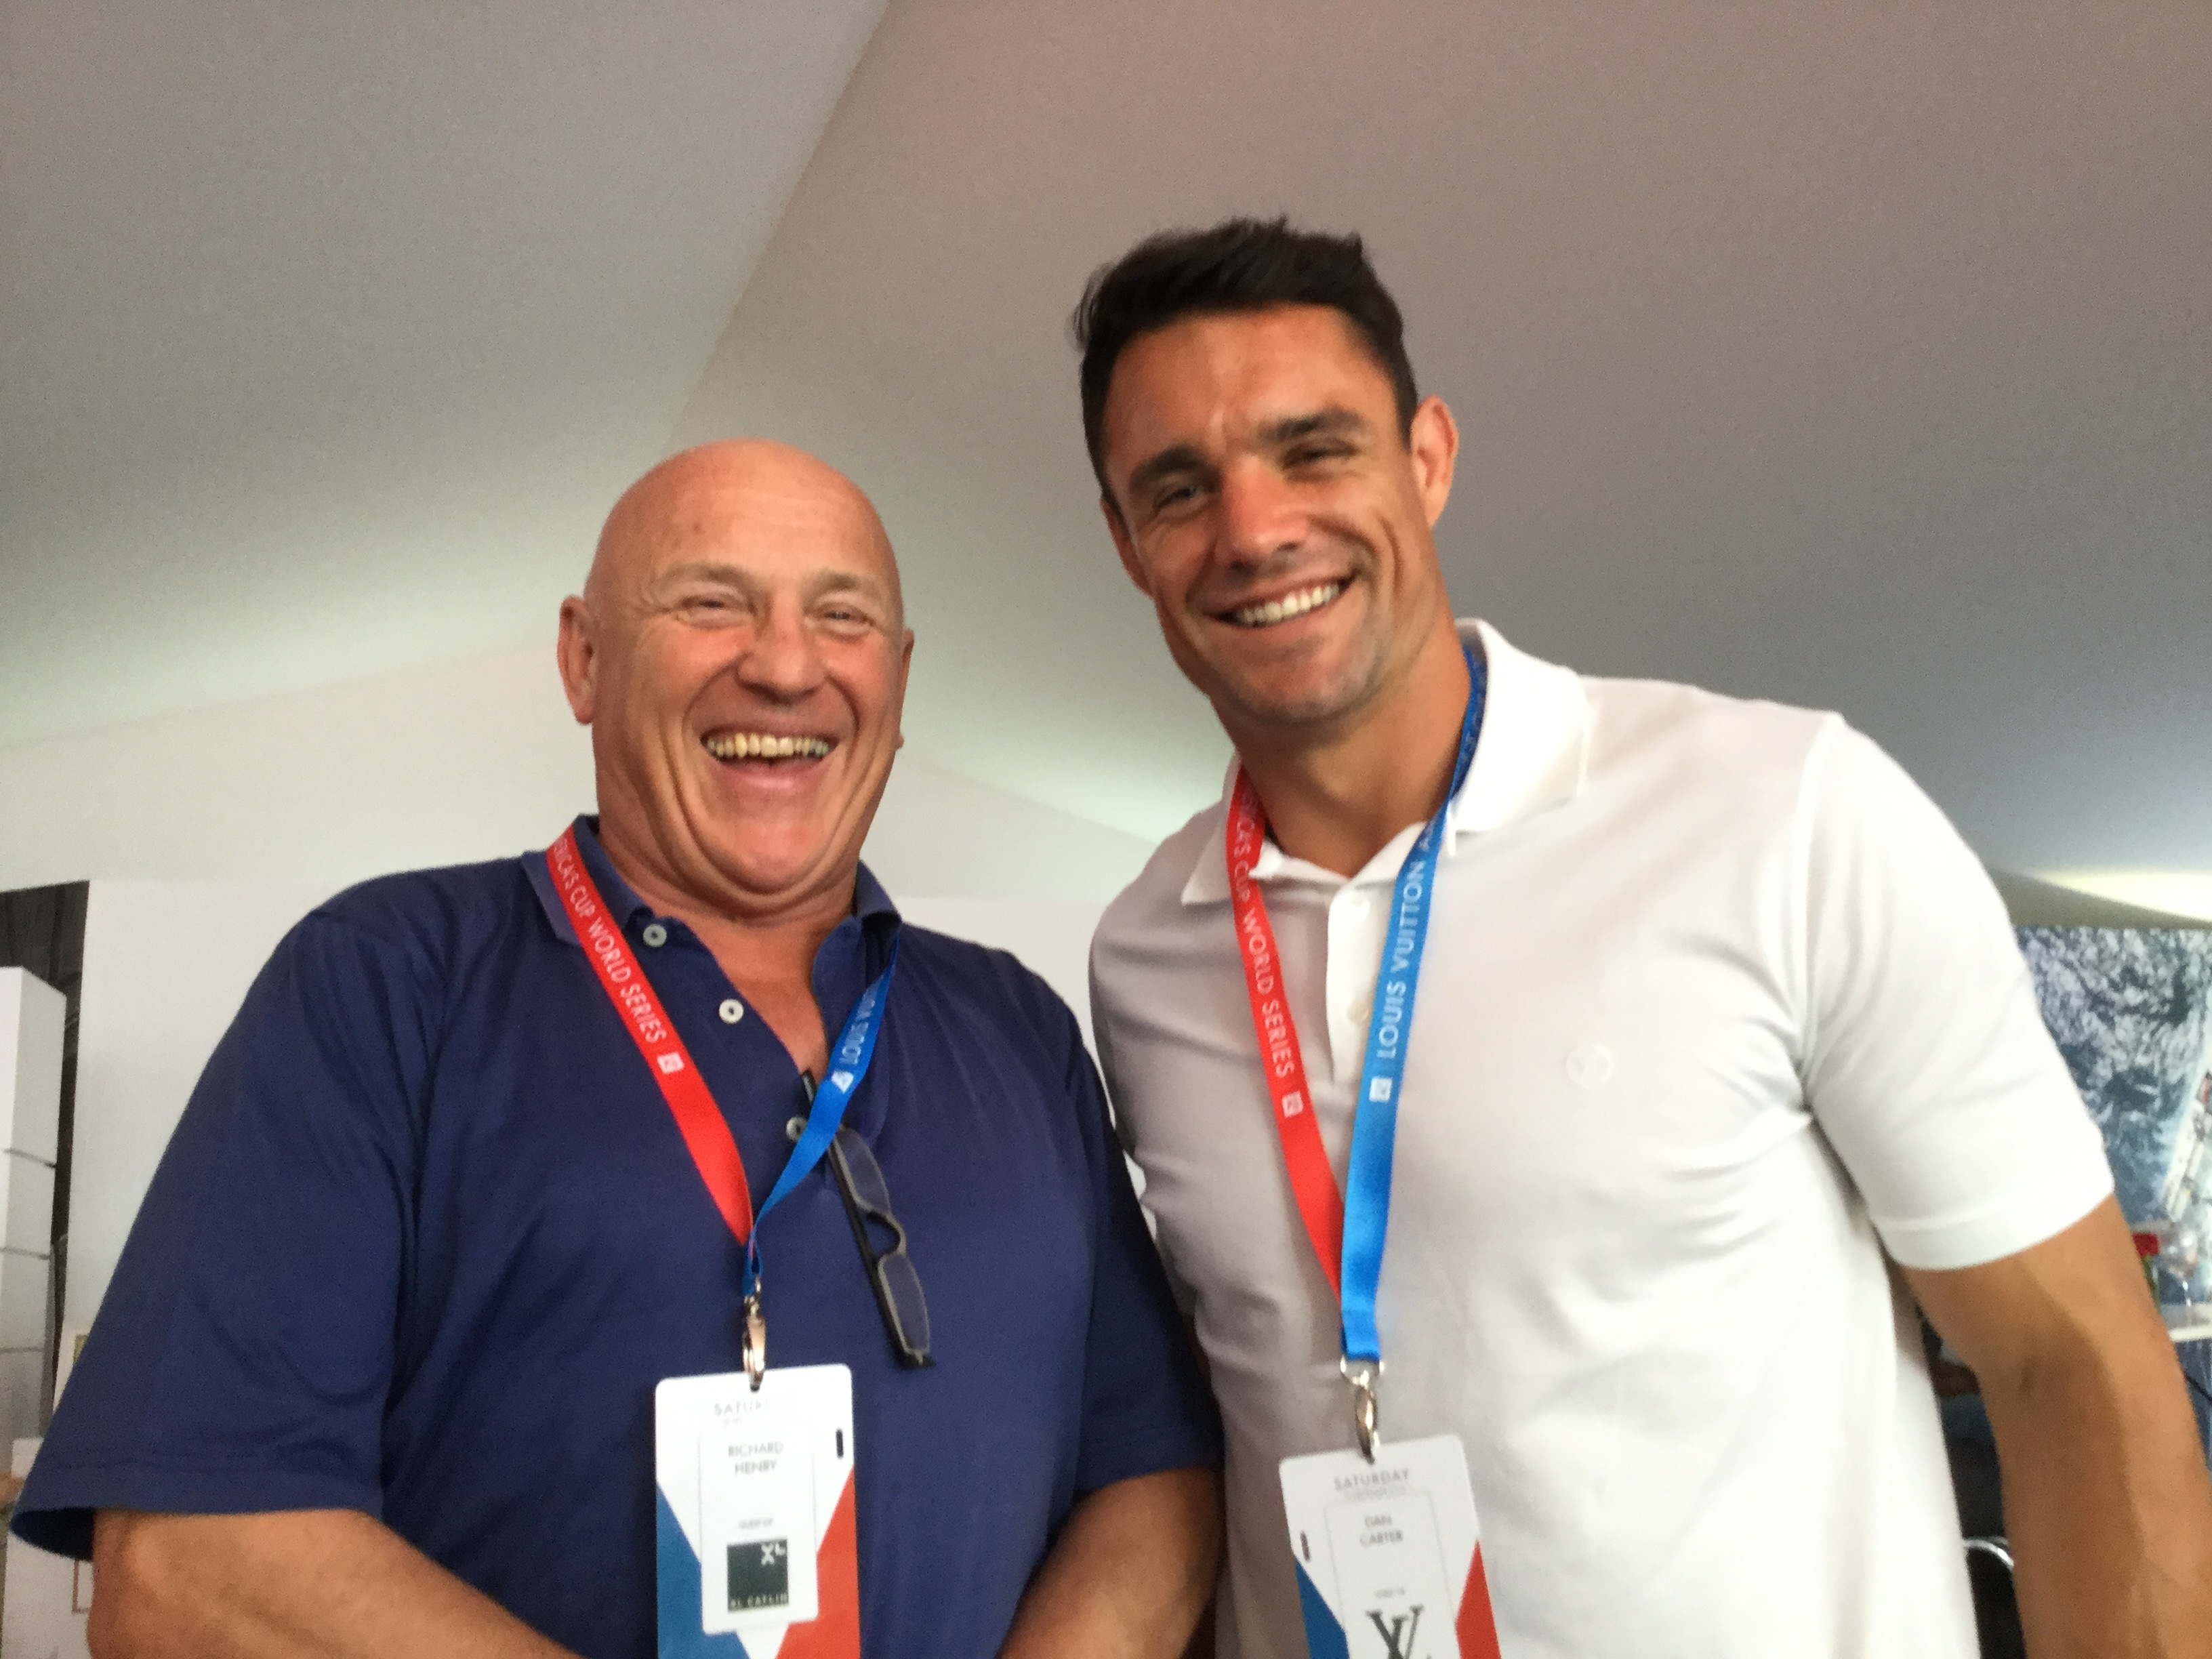 Richard Henry with Dan Carter